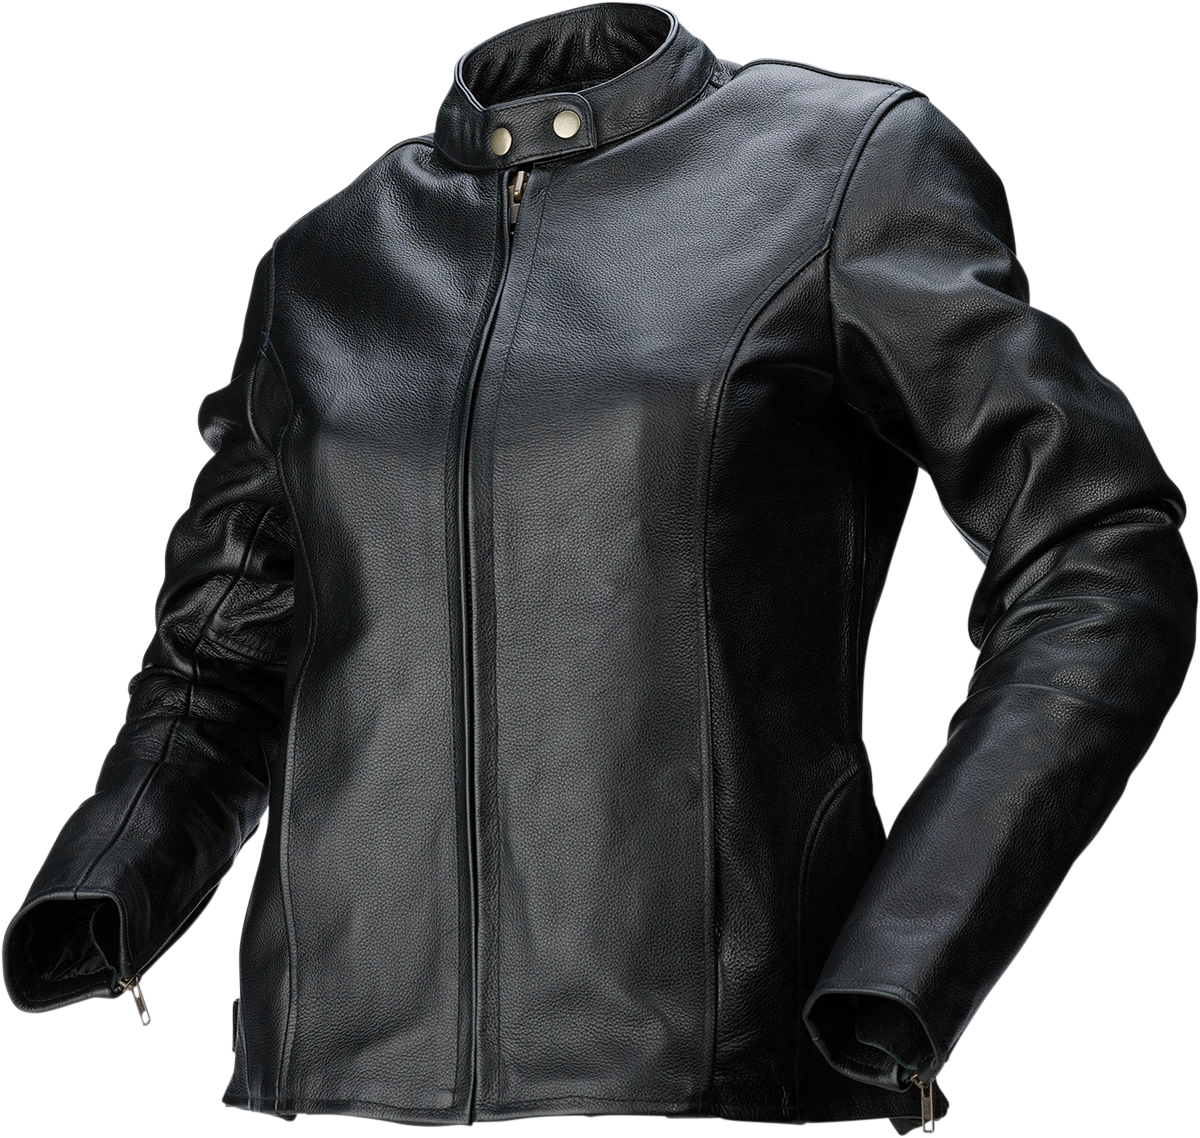 Womens Z1R Black 357 Leather Long Sleeve Motorcycle Riding Street Racing Jacket